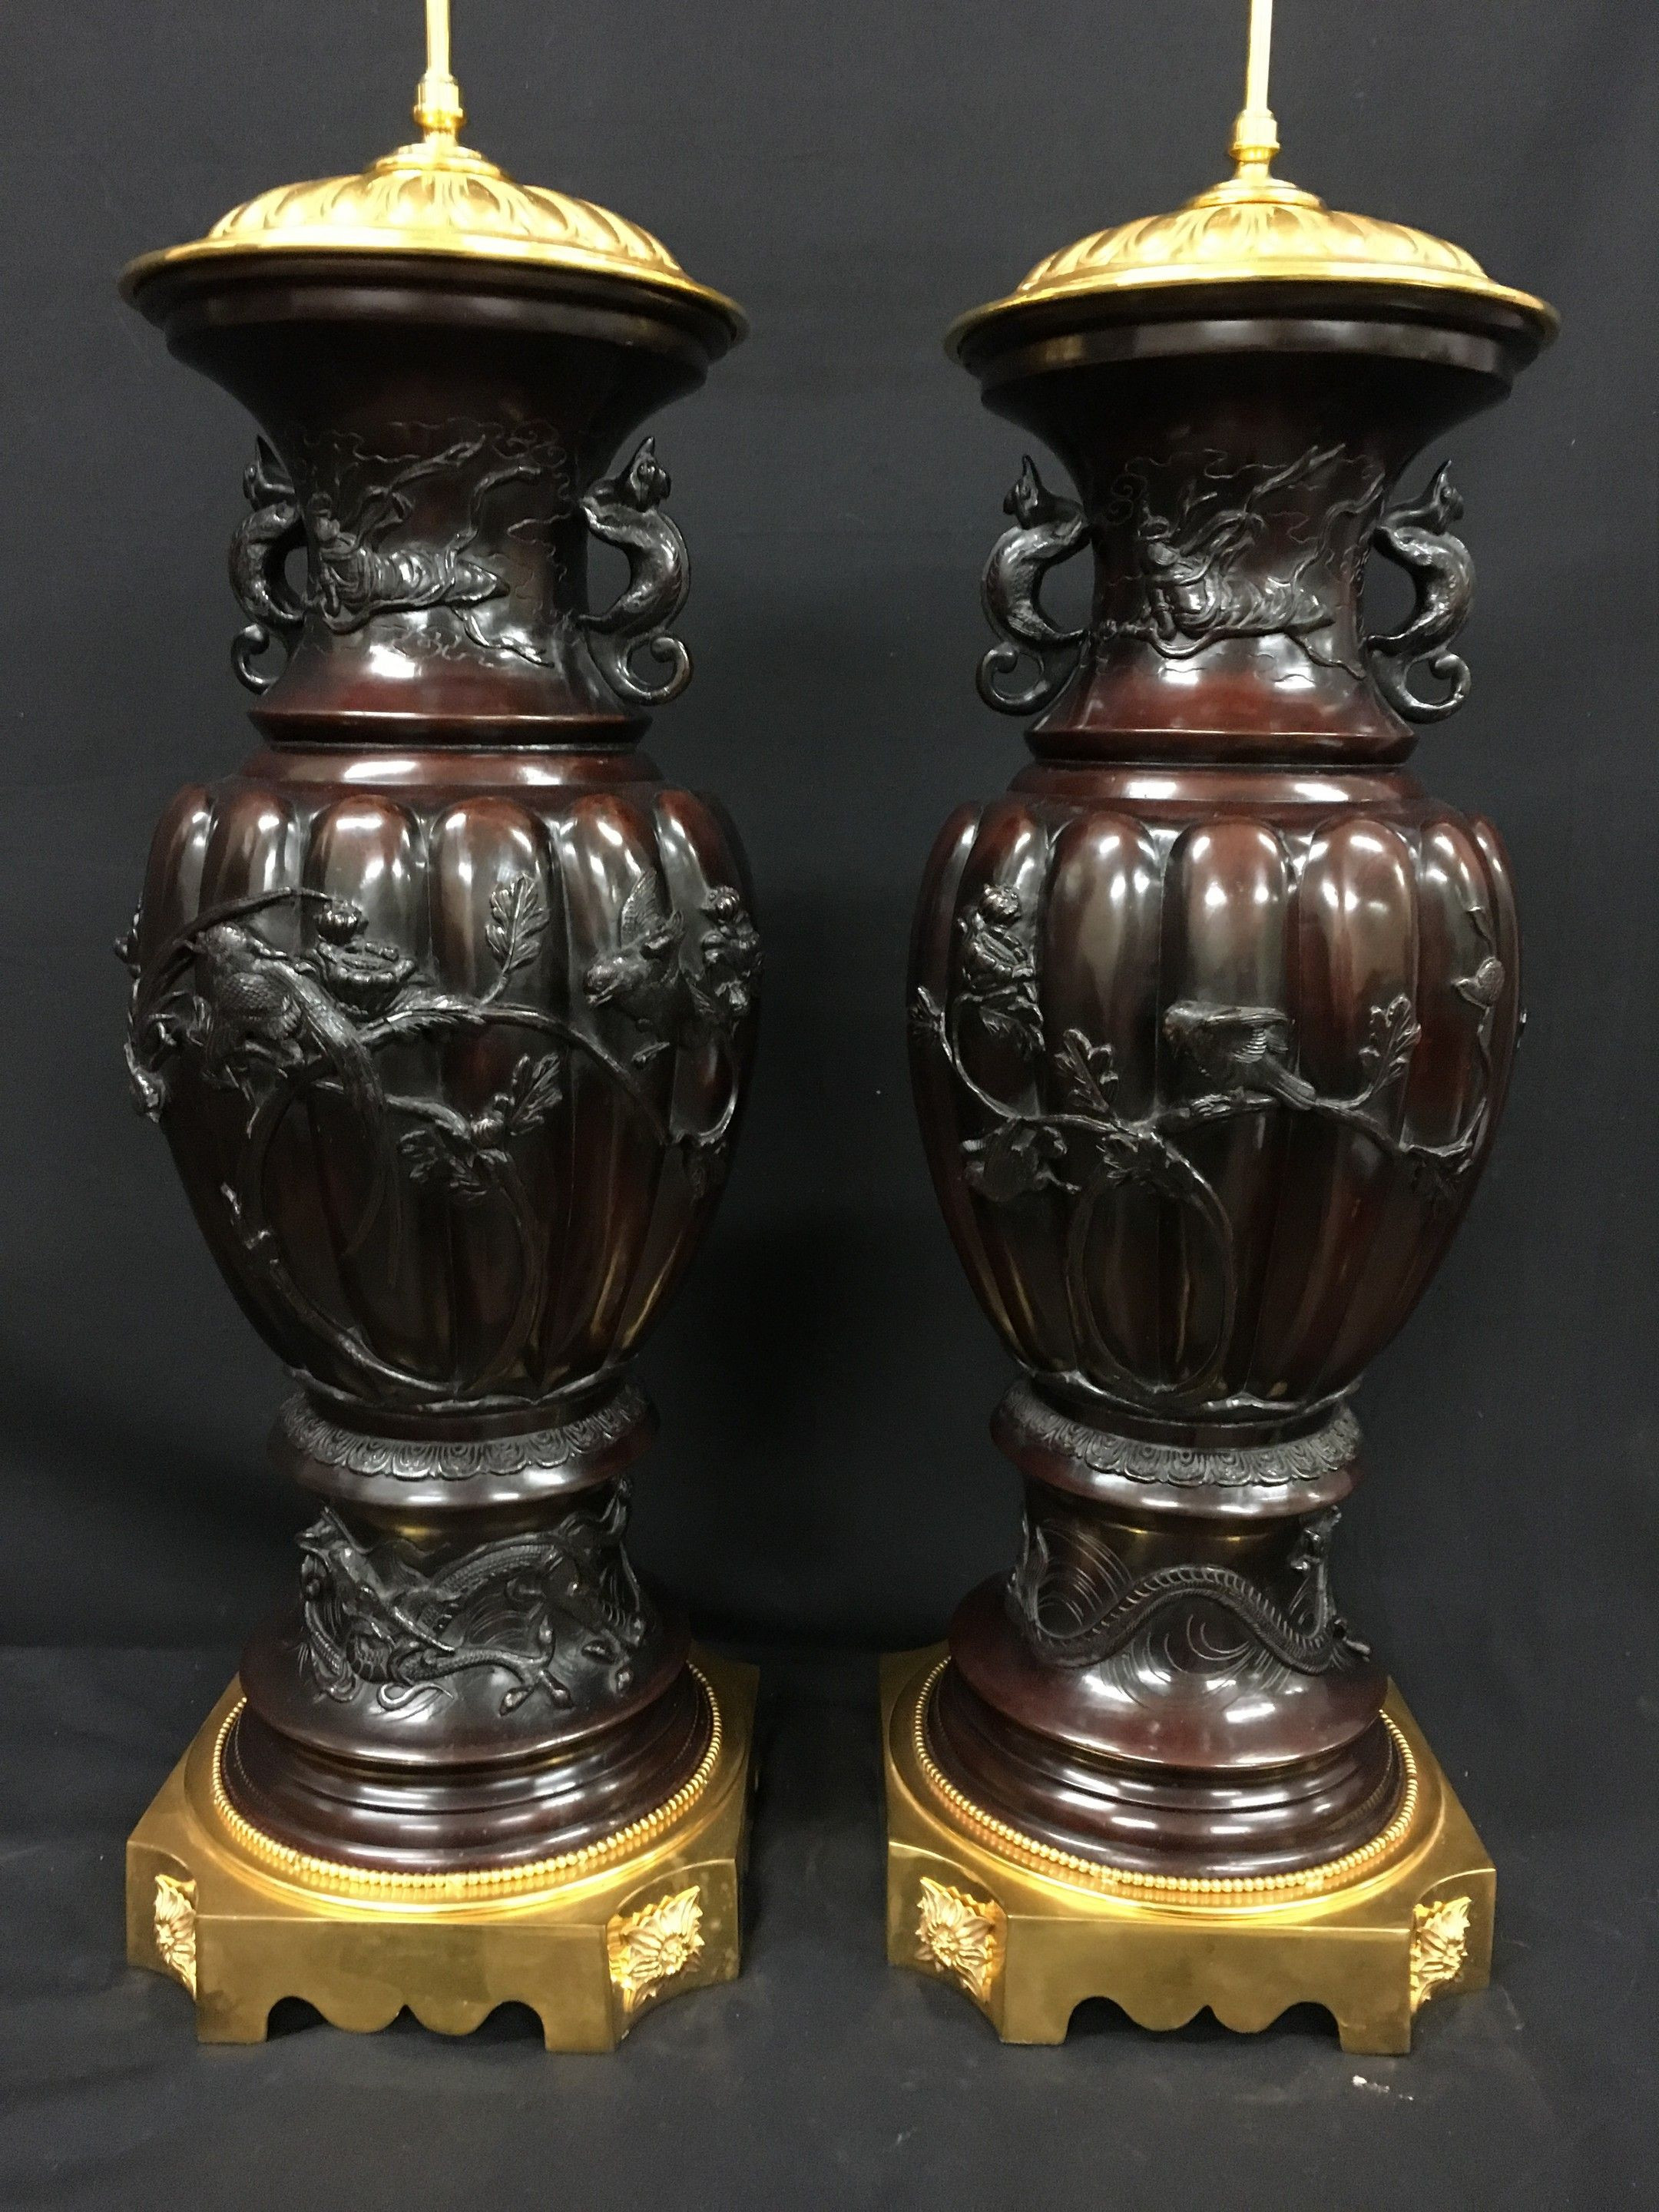 15 attractive Chinese Floor Vases Uk 2021 free download chinese floor vases uk of antique japanese vases the uks premier antiques portal online for pair large japanese bronze vases lamps